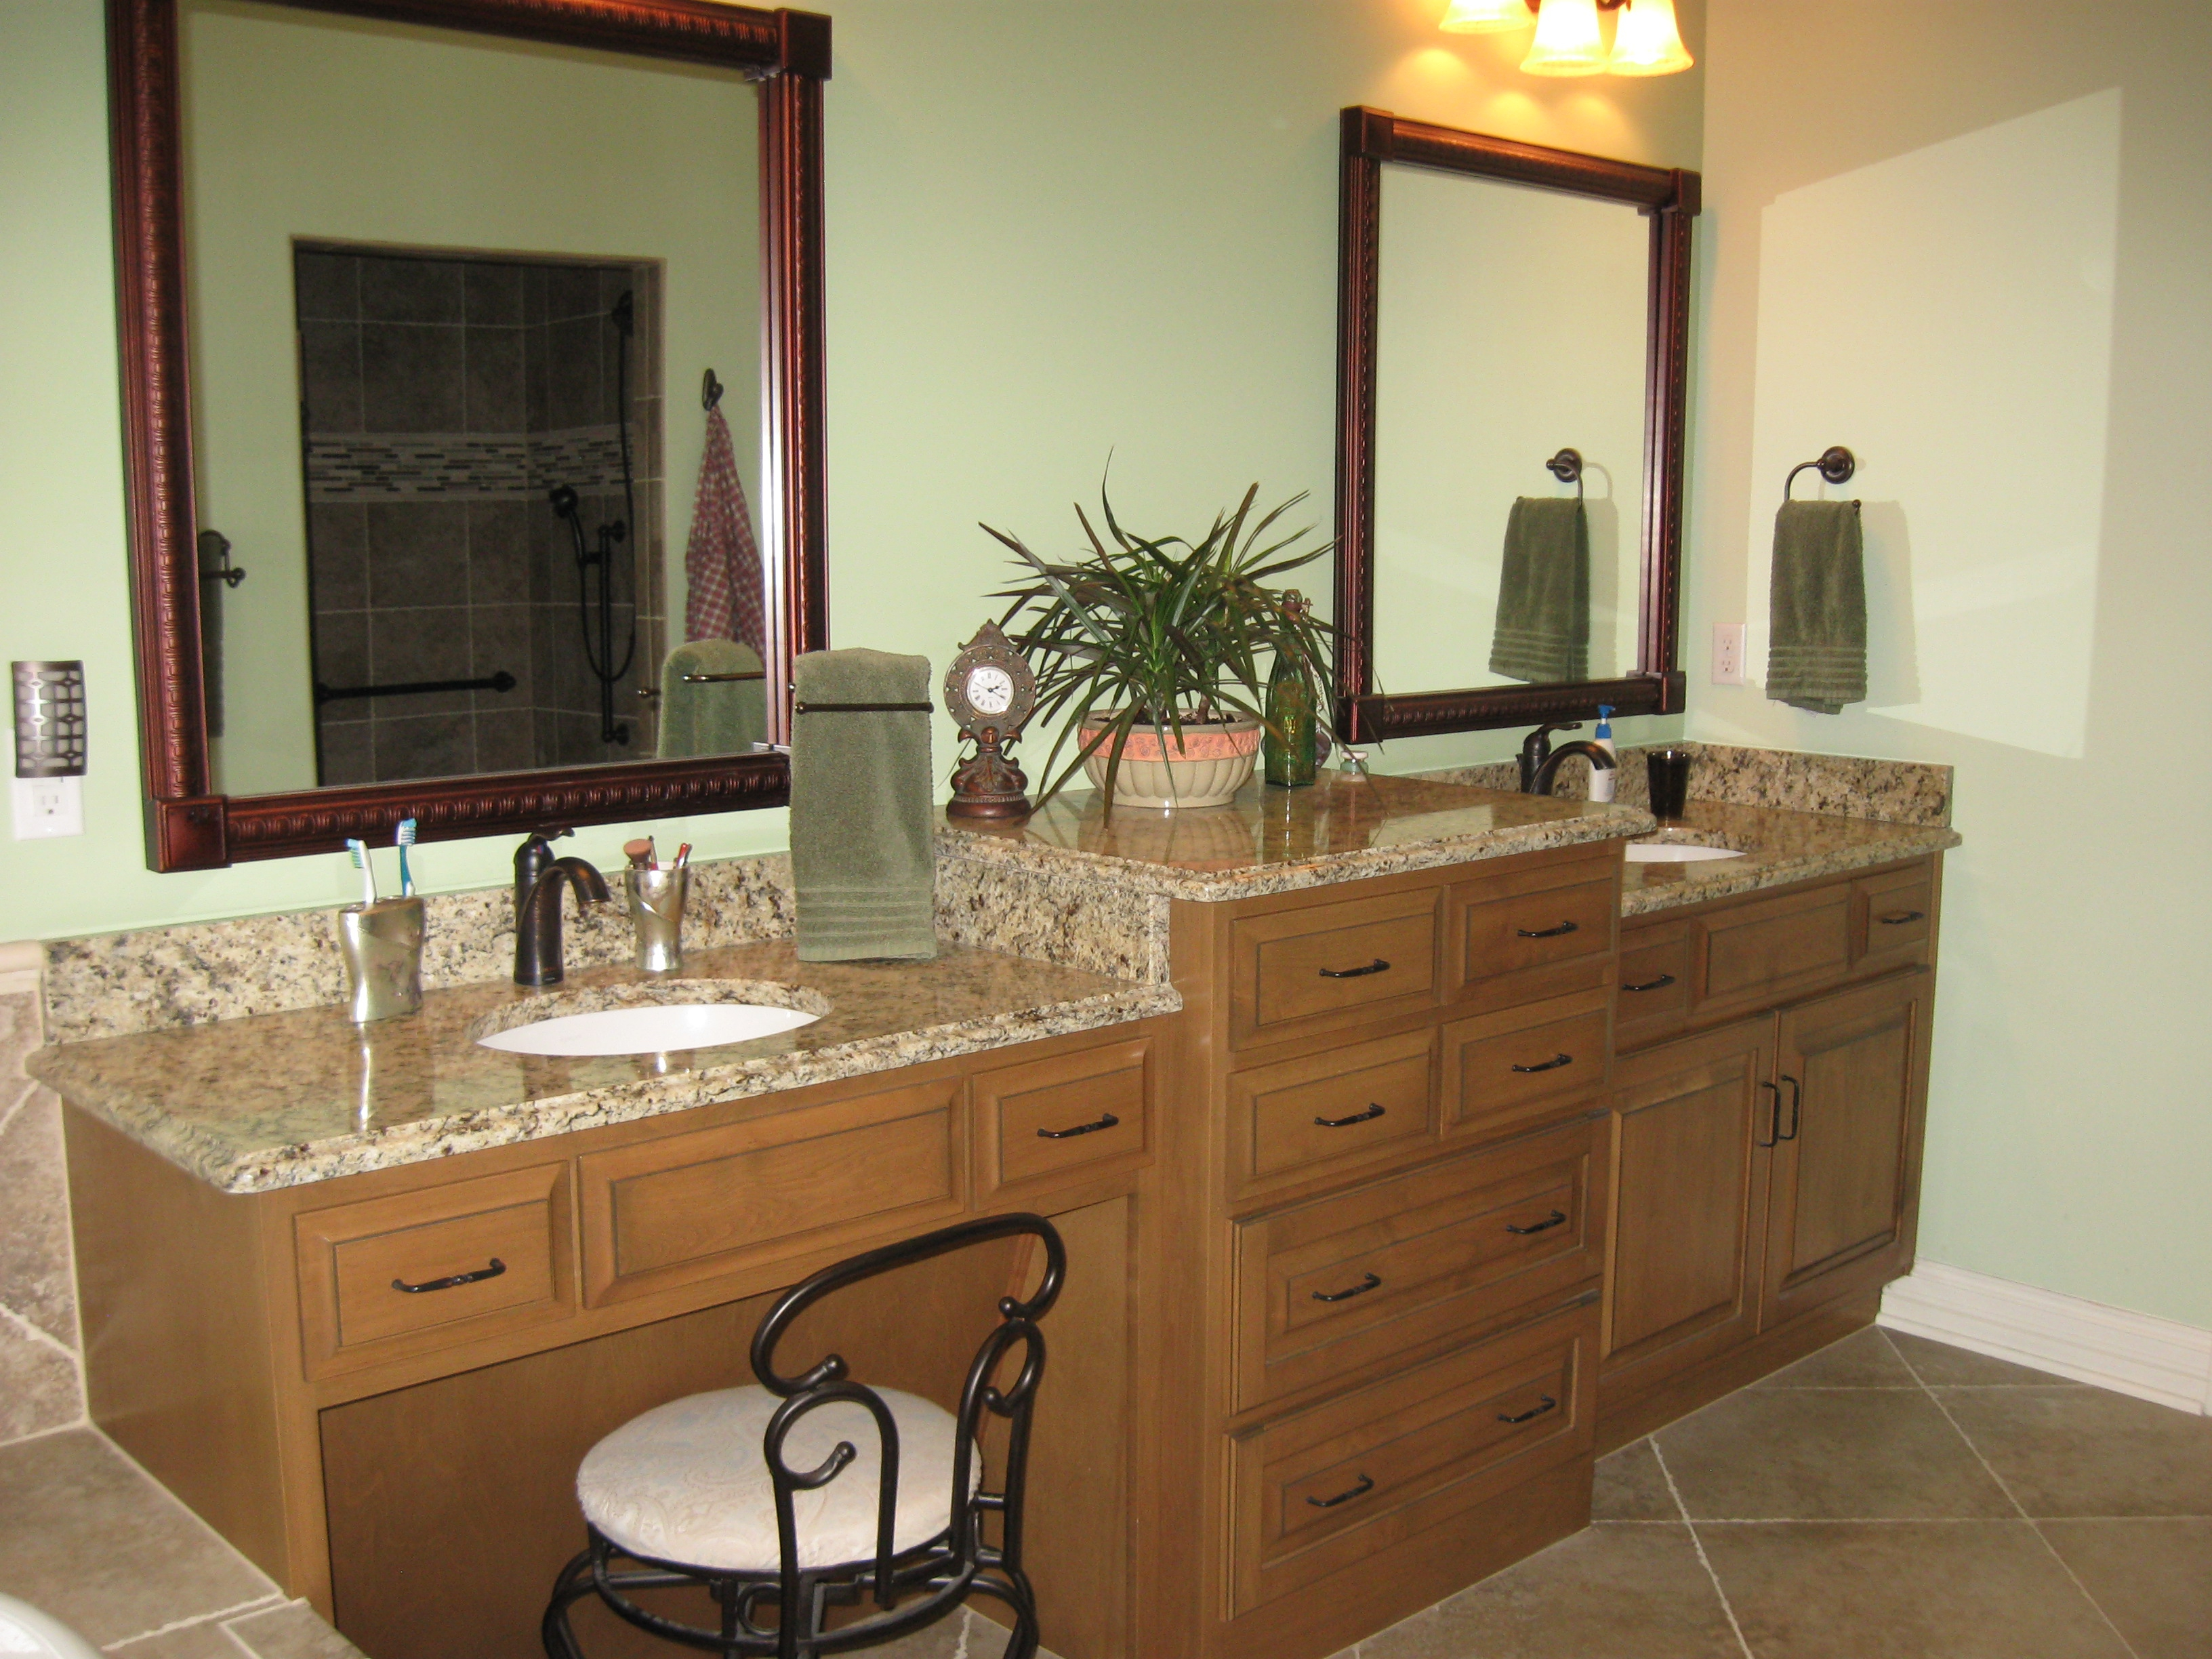 Bathroom Cabinets Louisville Ky custom bathroom cabinets & vanities | gallery | classic kitchens